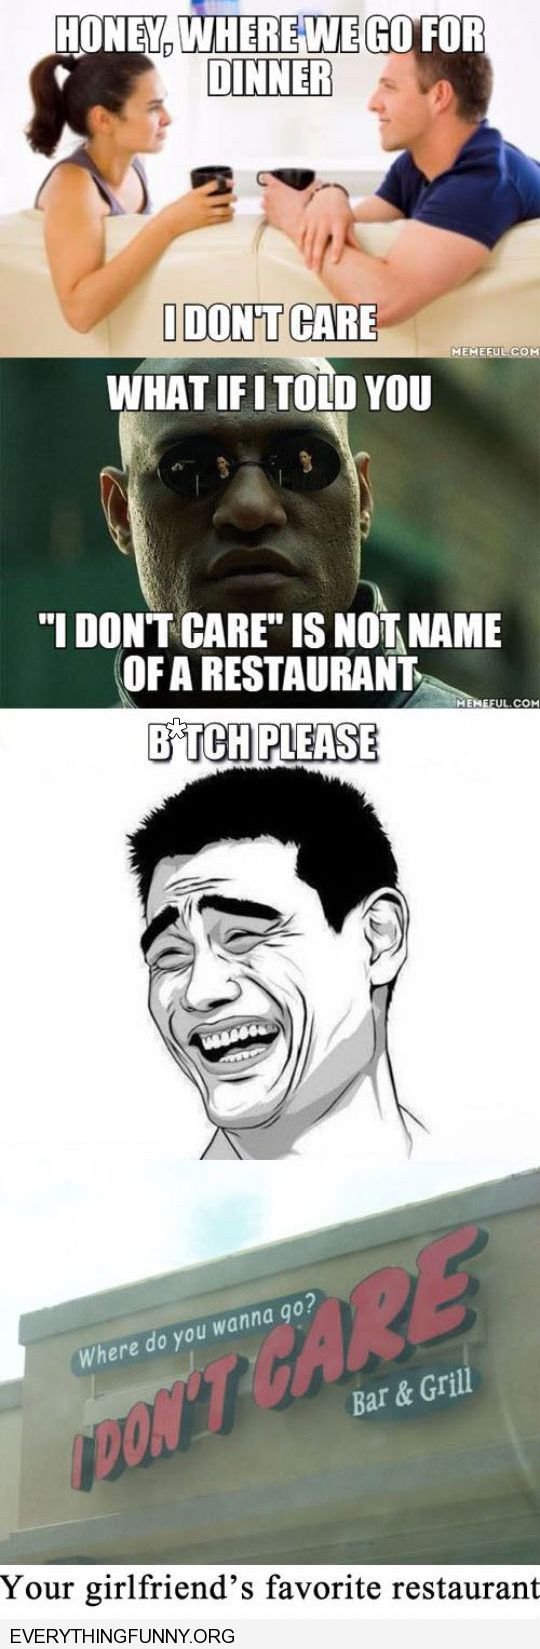 funny i don't care restaurant actual name of restaurant your girlfriend's favorite restaurant